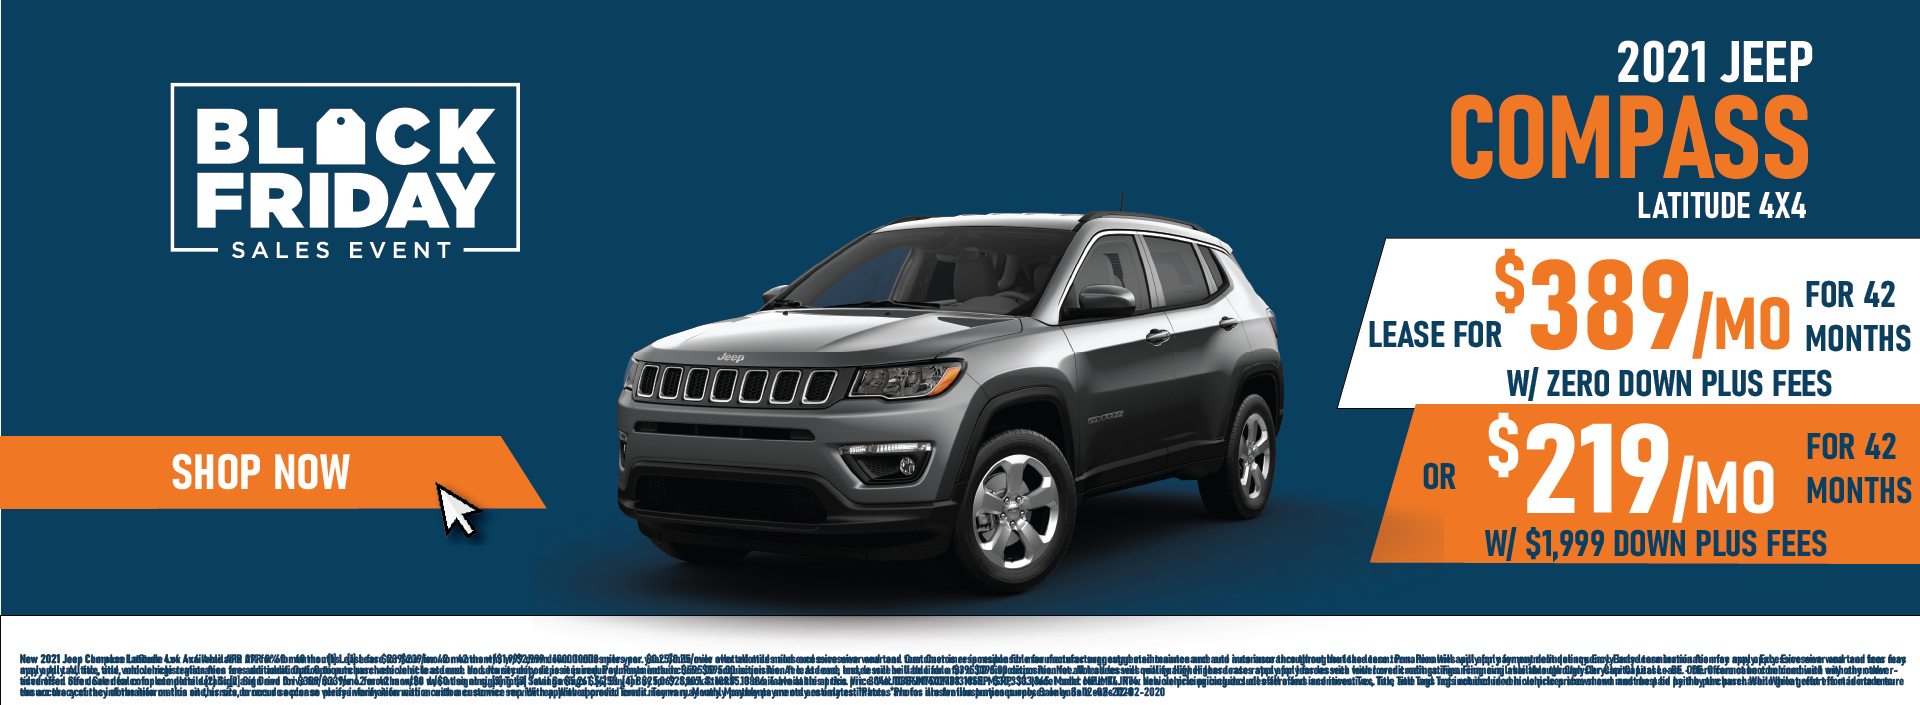 Whitewater – Jeep Compass November Updated Again